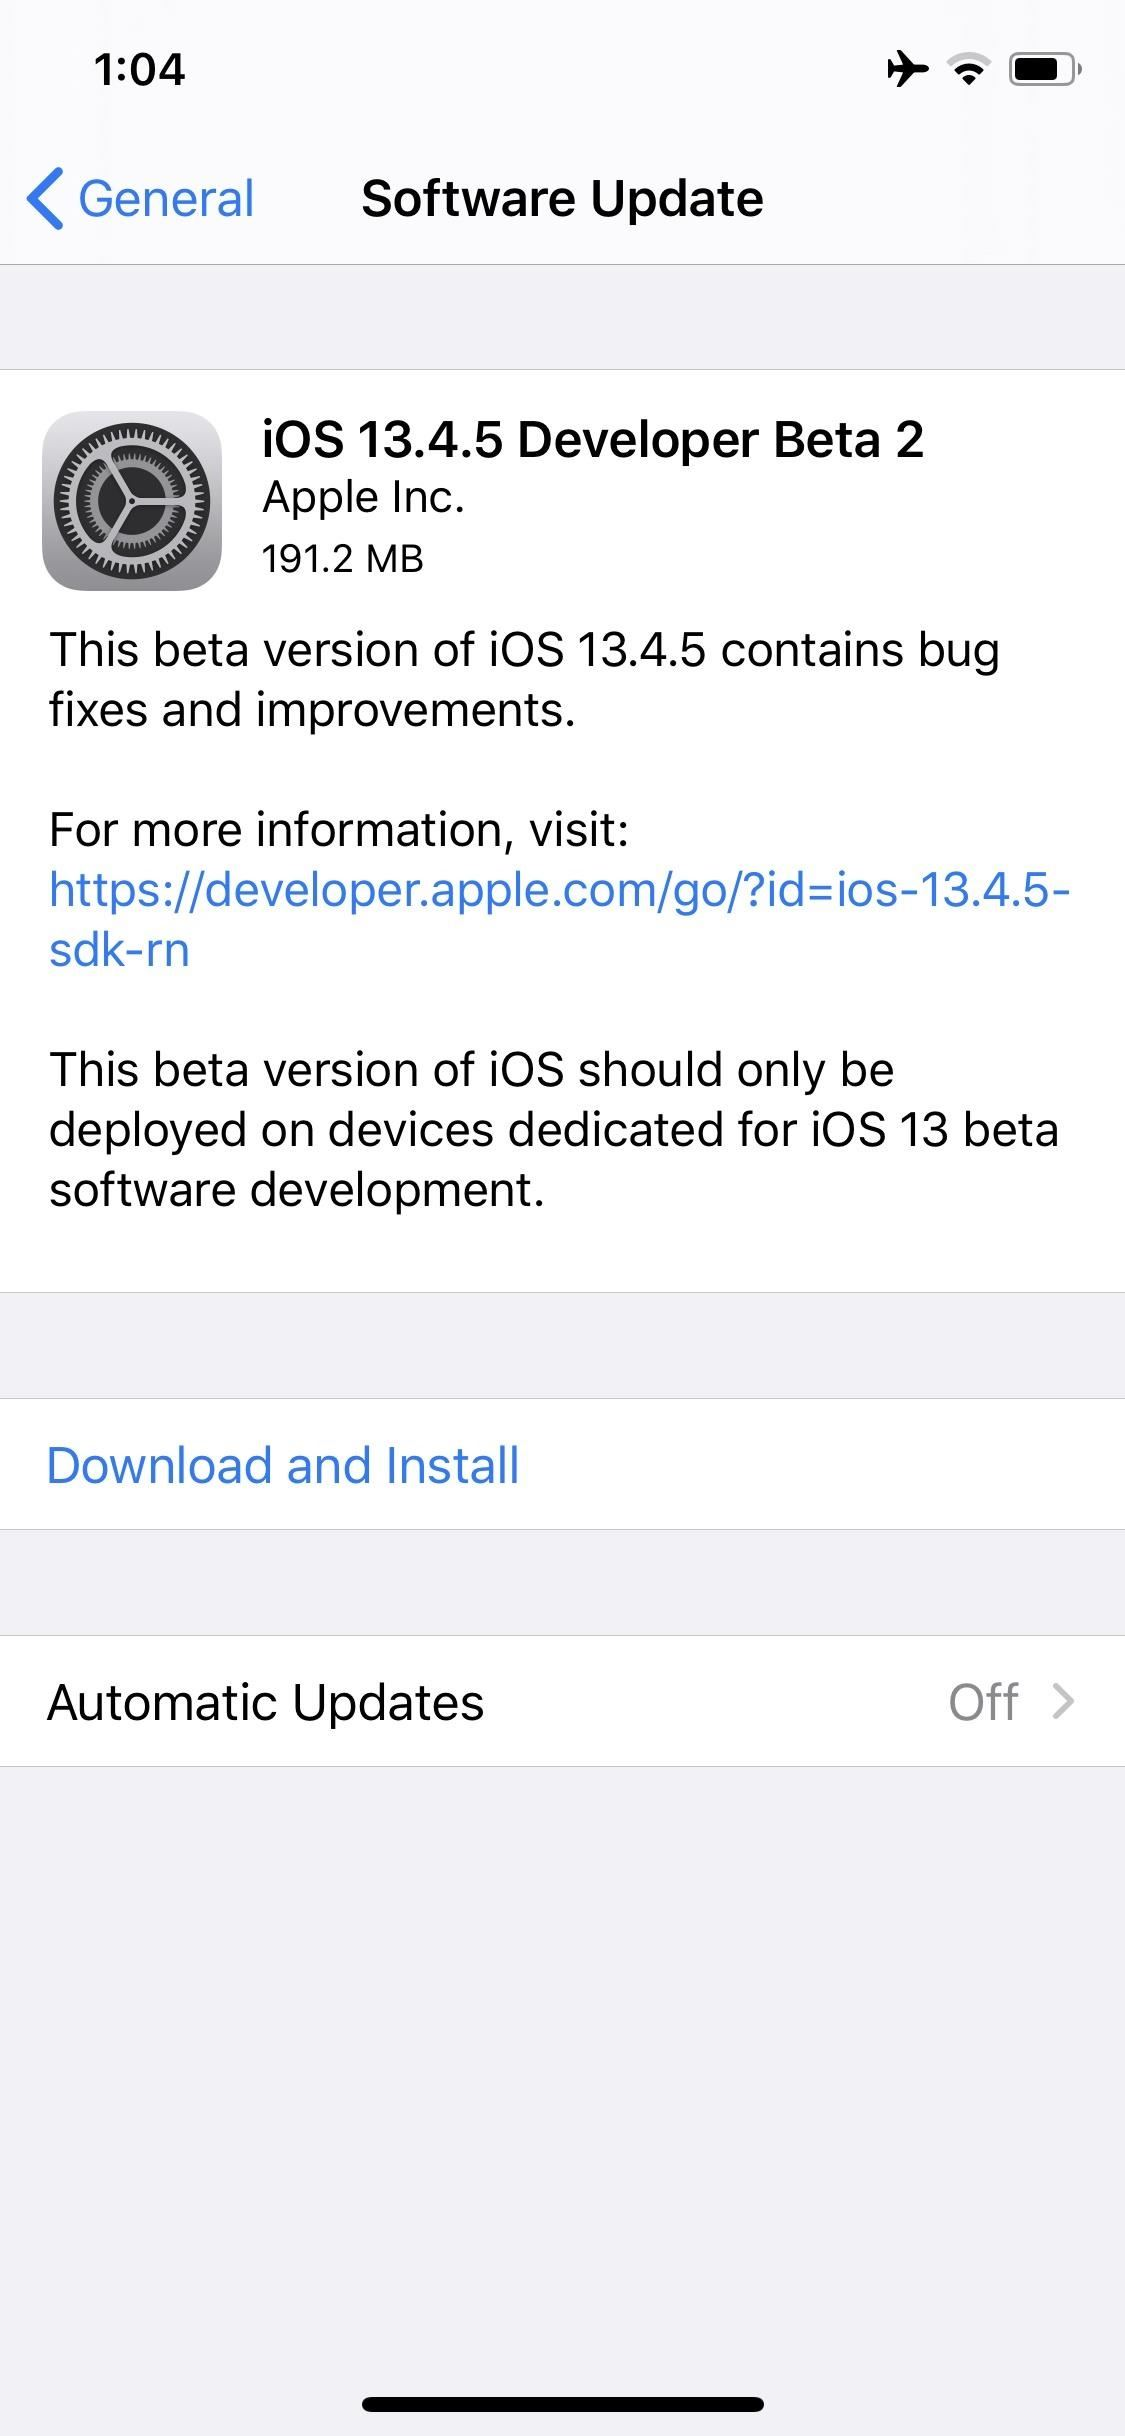 Apple Releases iOS 13.4.5 Developer Beta 2 for iPhone Today